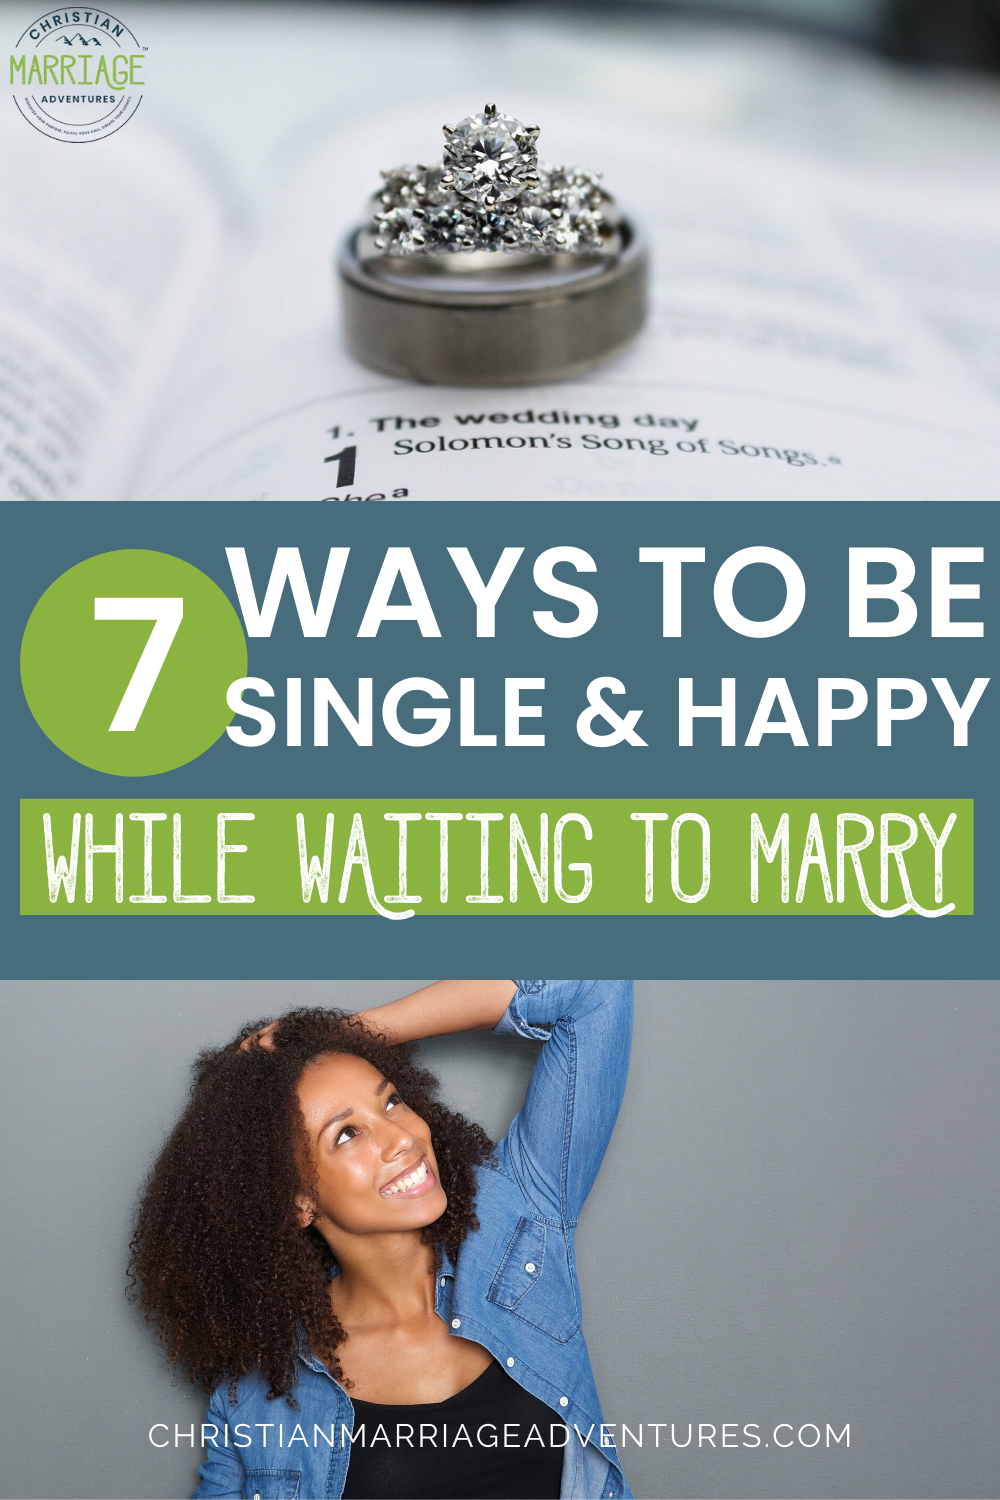 7 Ways to Be Single and Happy